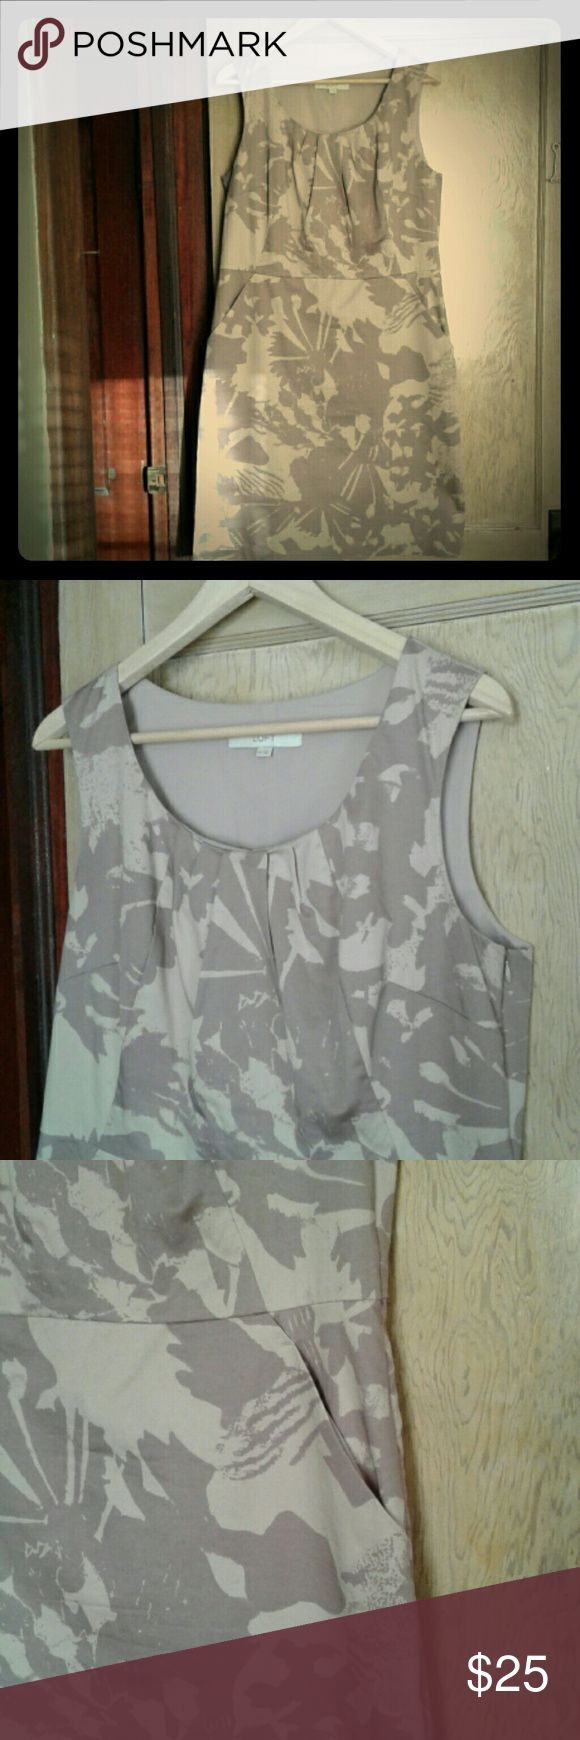 Anne Taylor Loft dress size 14 This dress is in good condition and it has pockets! LOFT Dresses